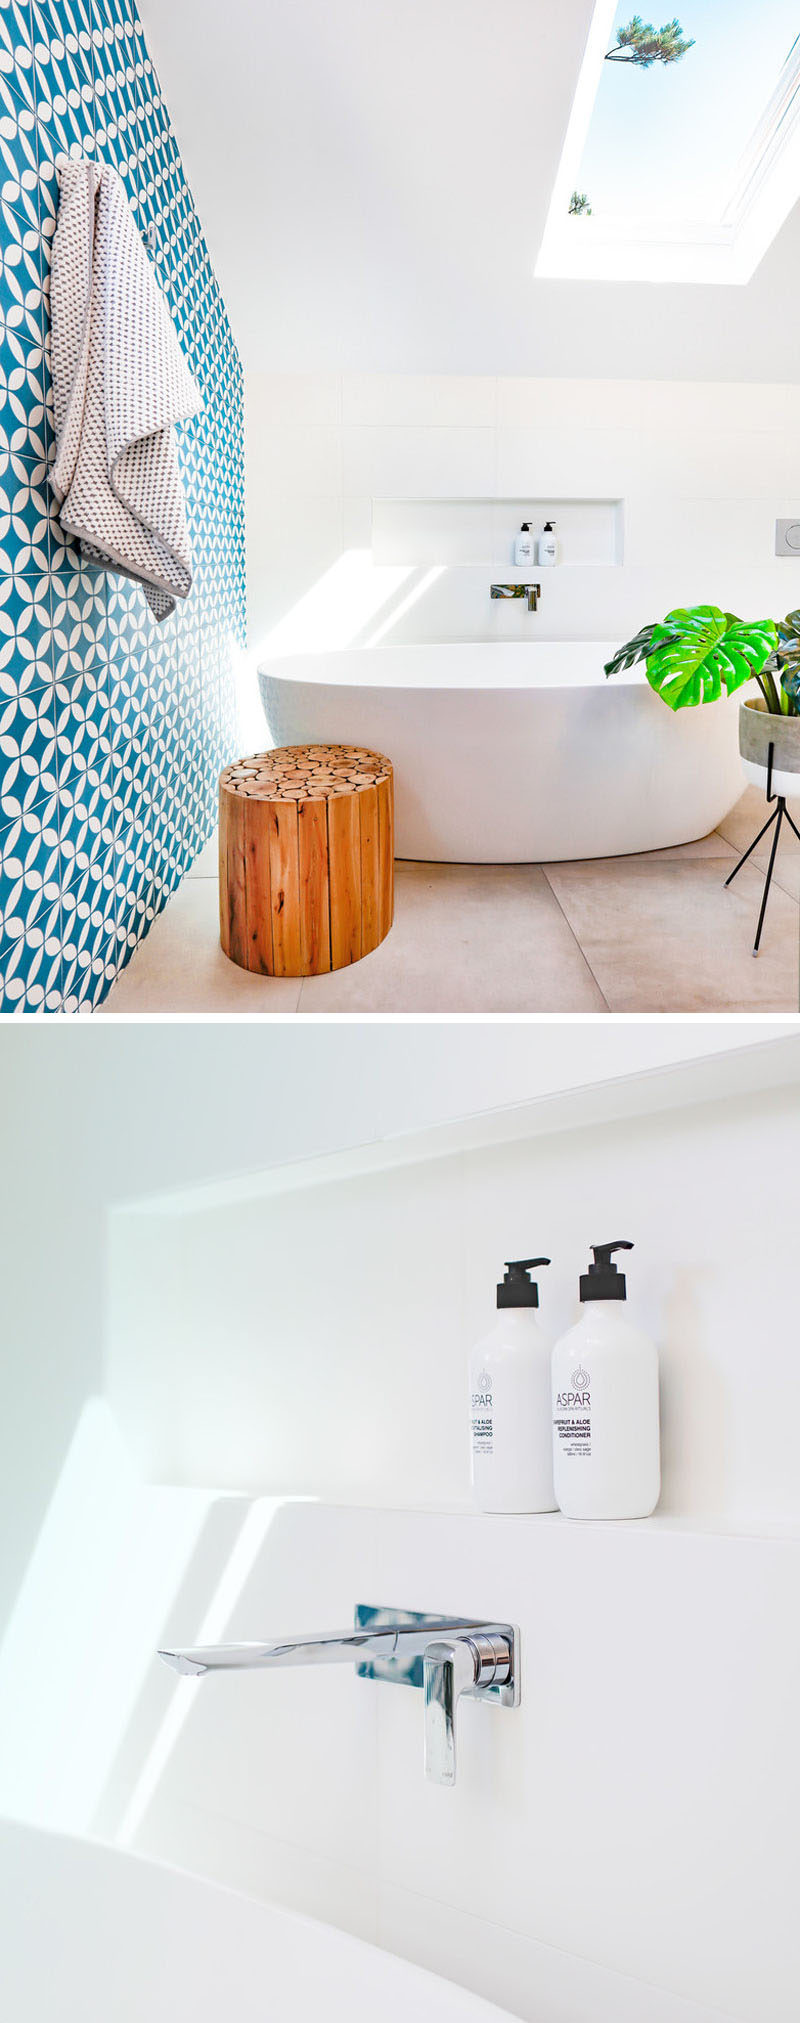 This modern blue and white bathroom has a built-in shelf above the freestanding bathtub to keep all the necessities within arms reach.